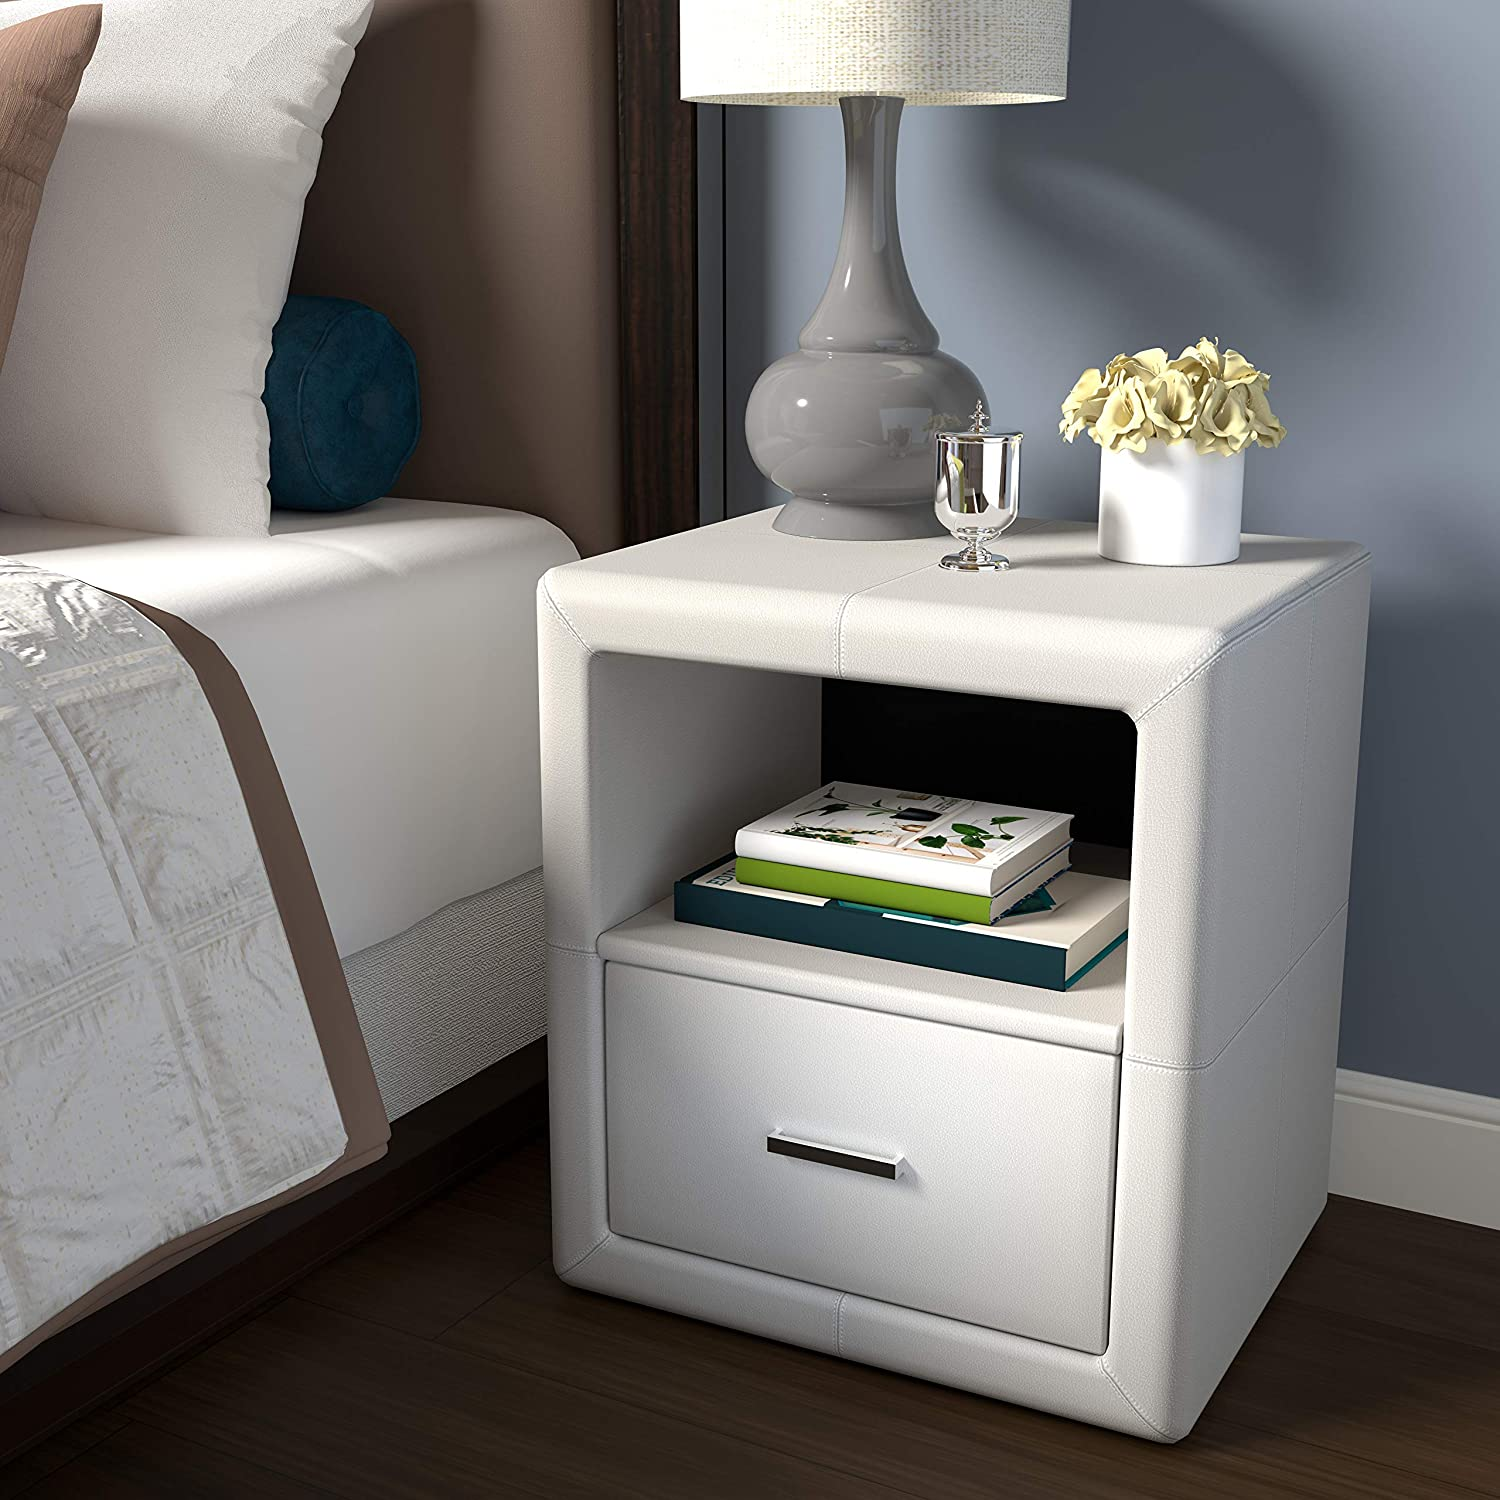 Boyd Sleep Contemporary Bedroom Furniture: Lombardi Upholstered Nightstand with Single Drawer and Open Shelf, Faux Leather, White